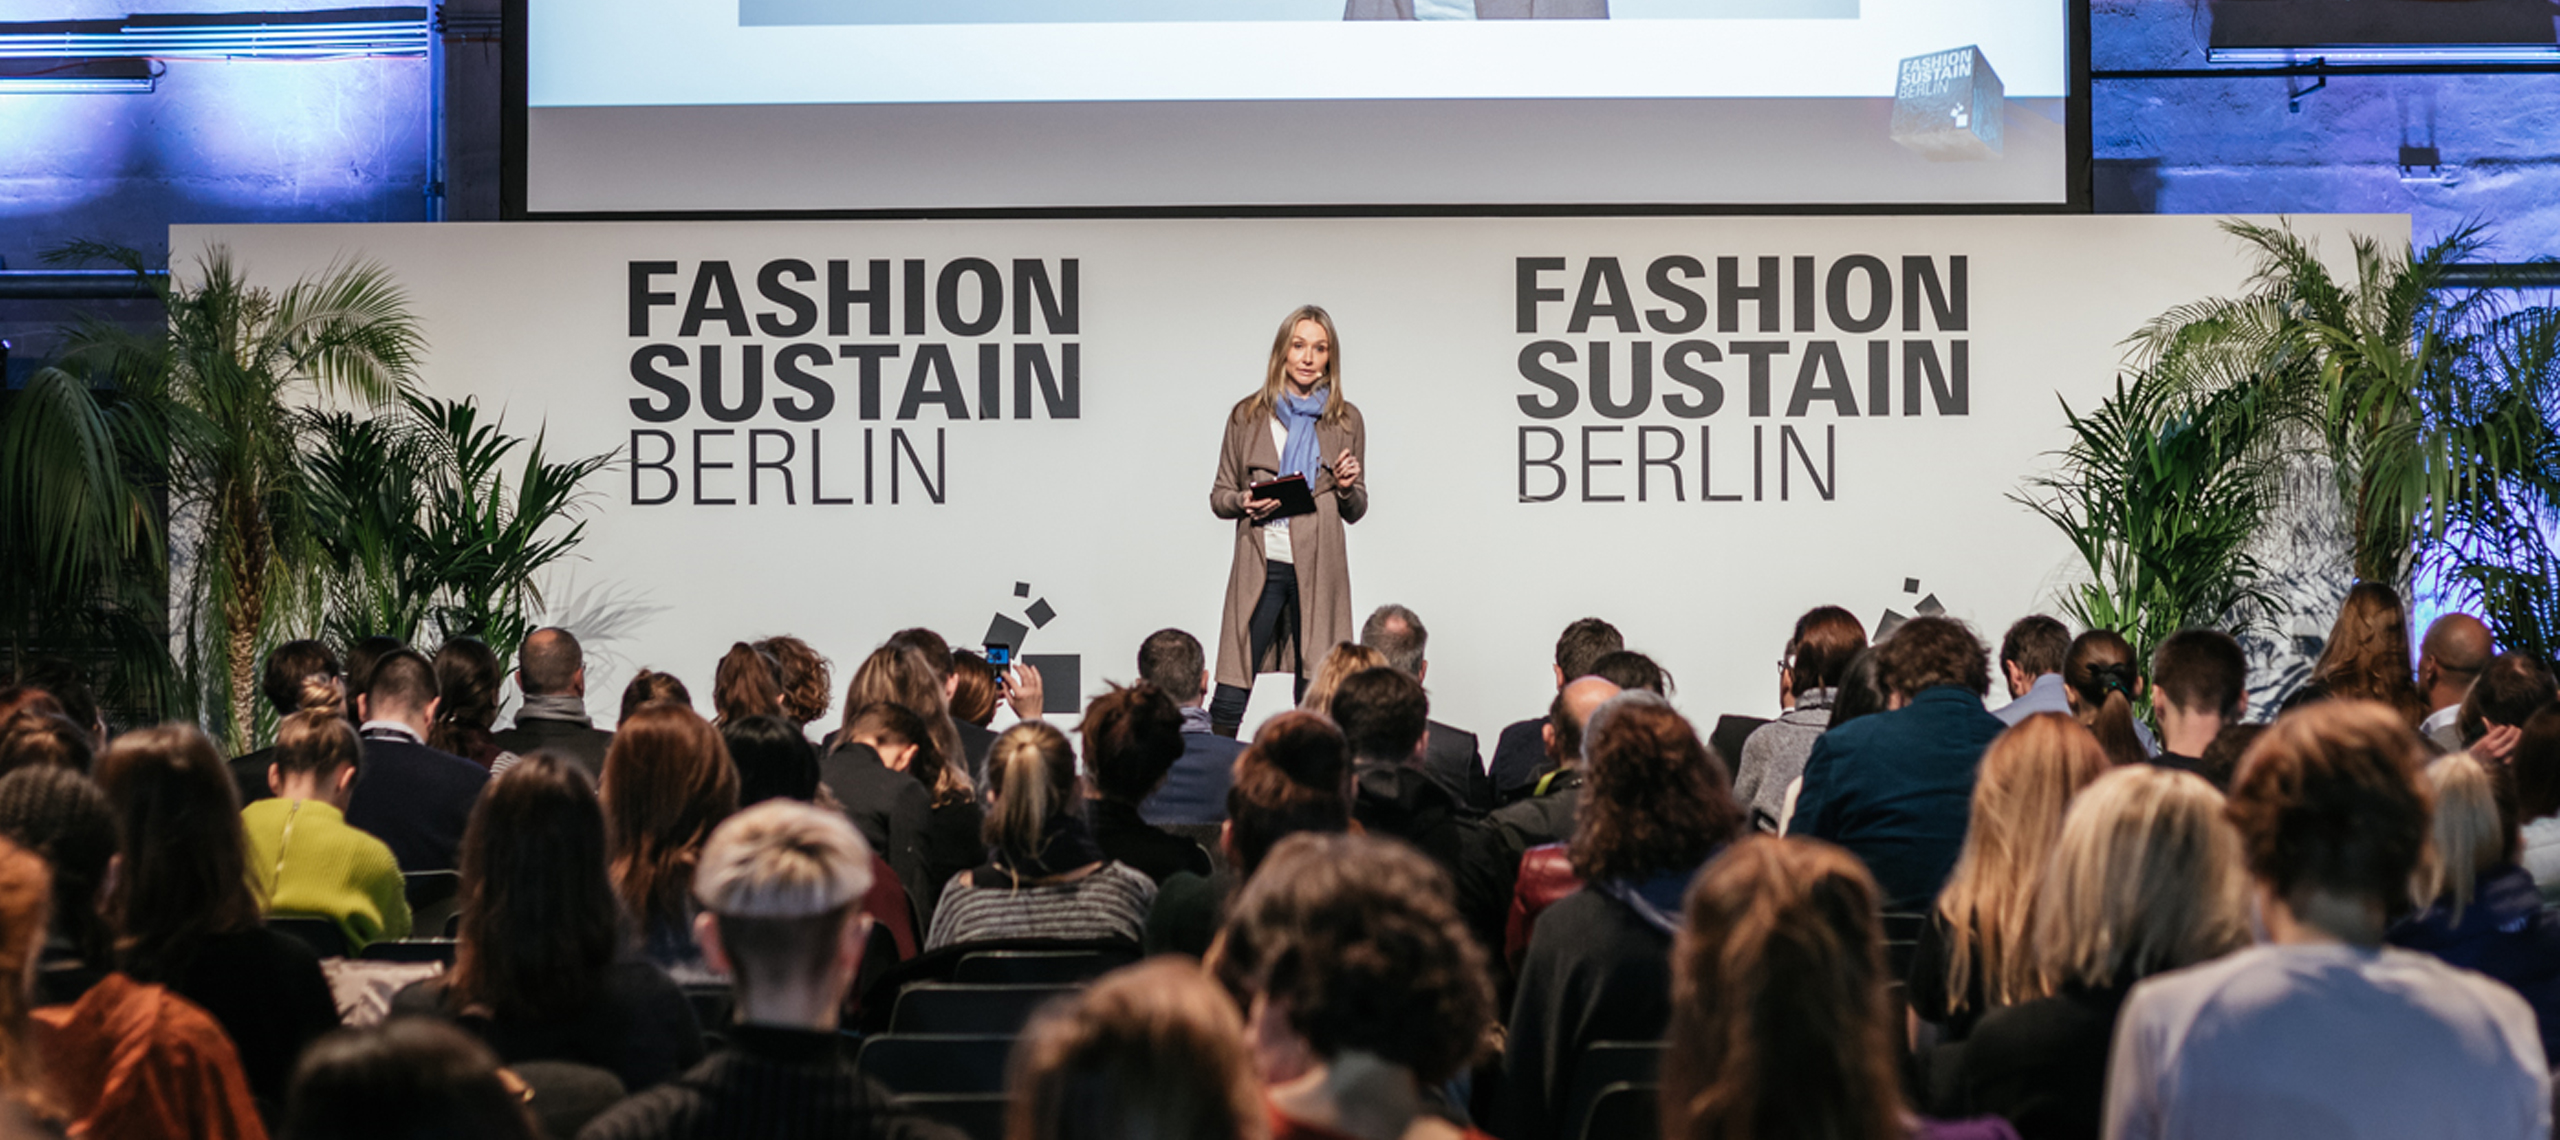 fashion-sustain-header-texpertise